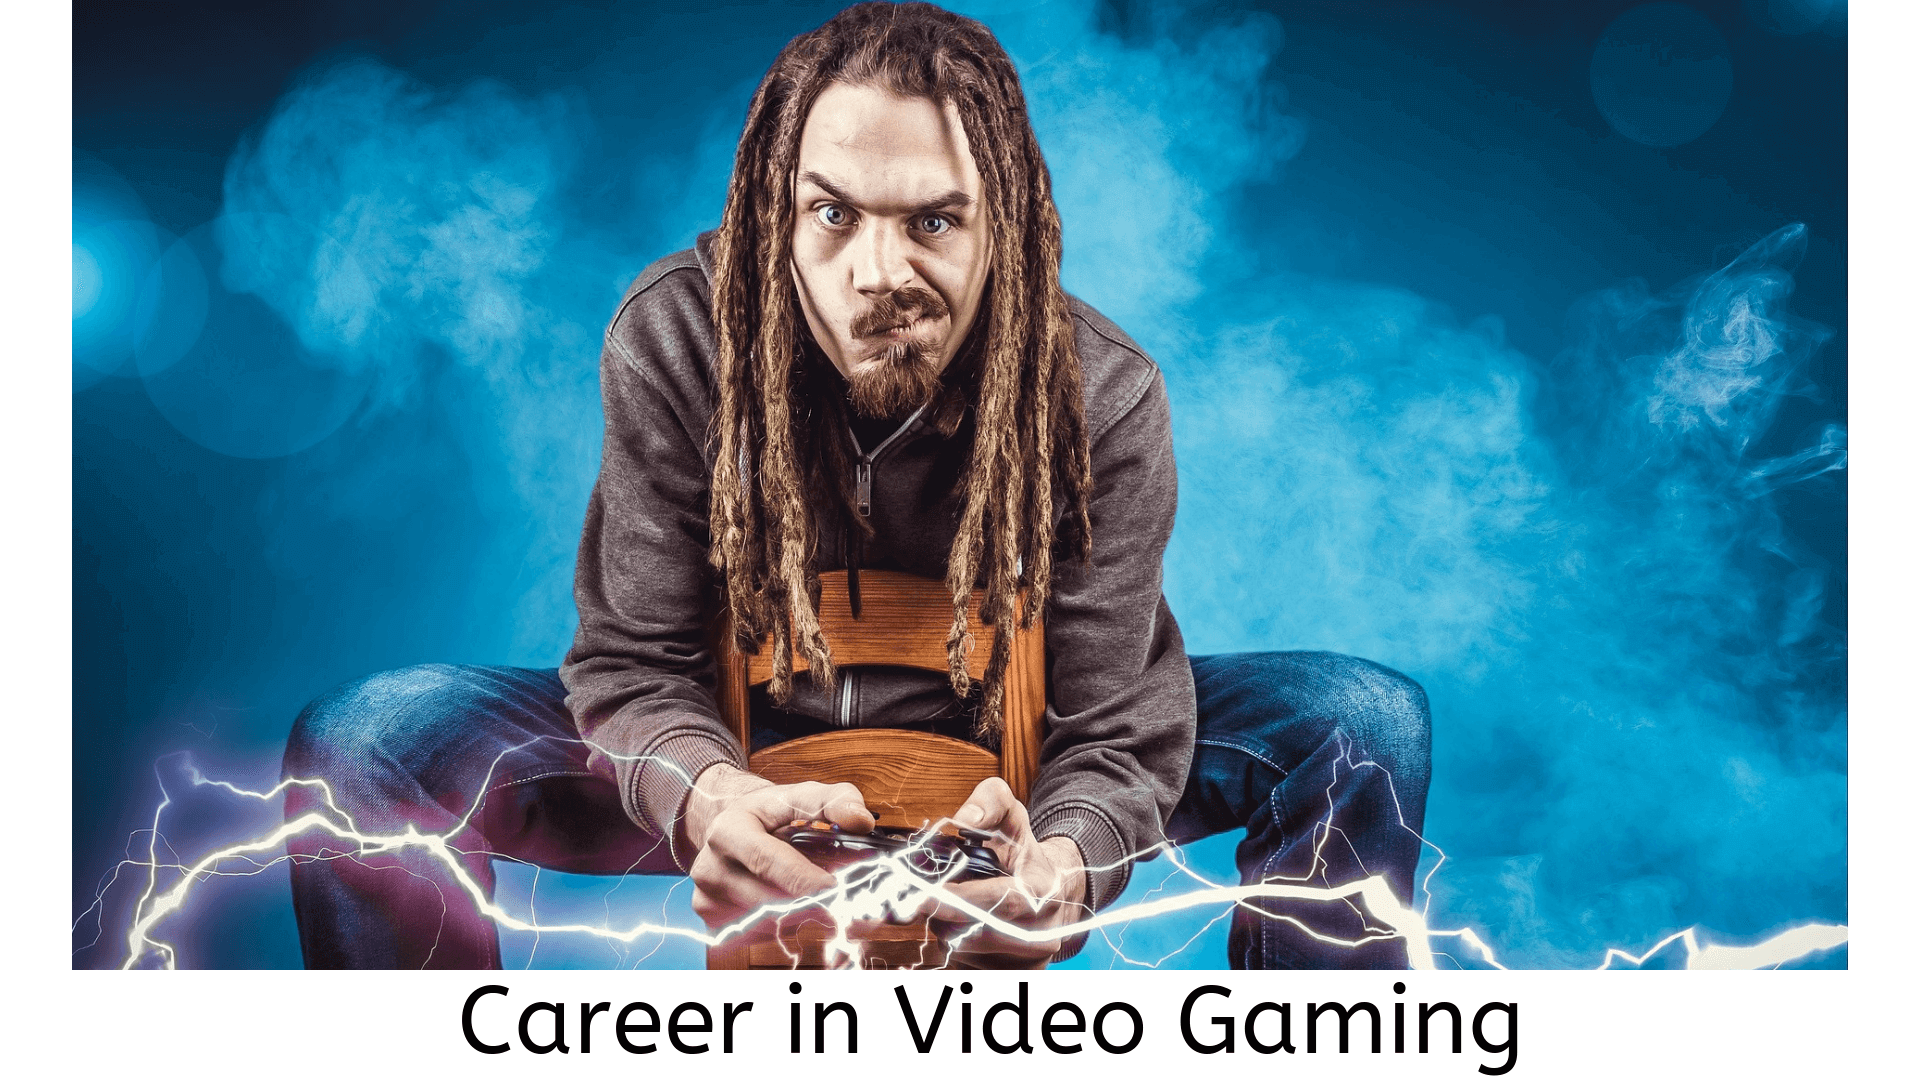 Coolest Profession Around the World video gaming